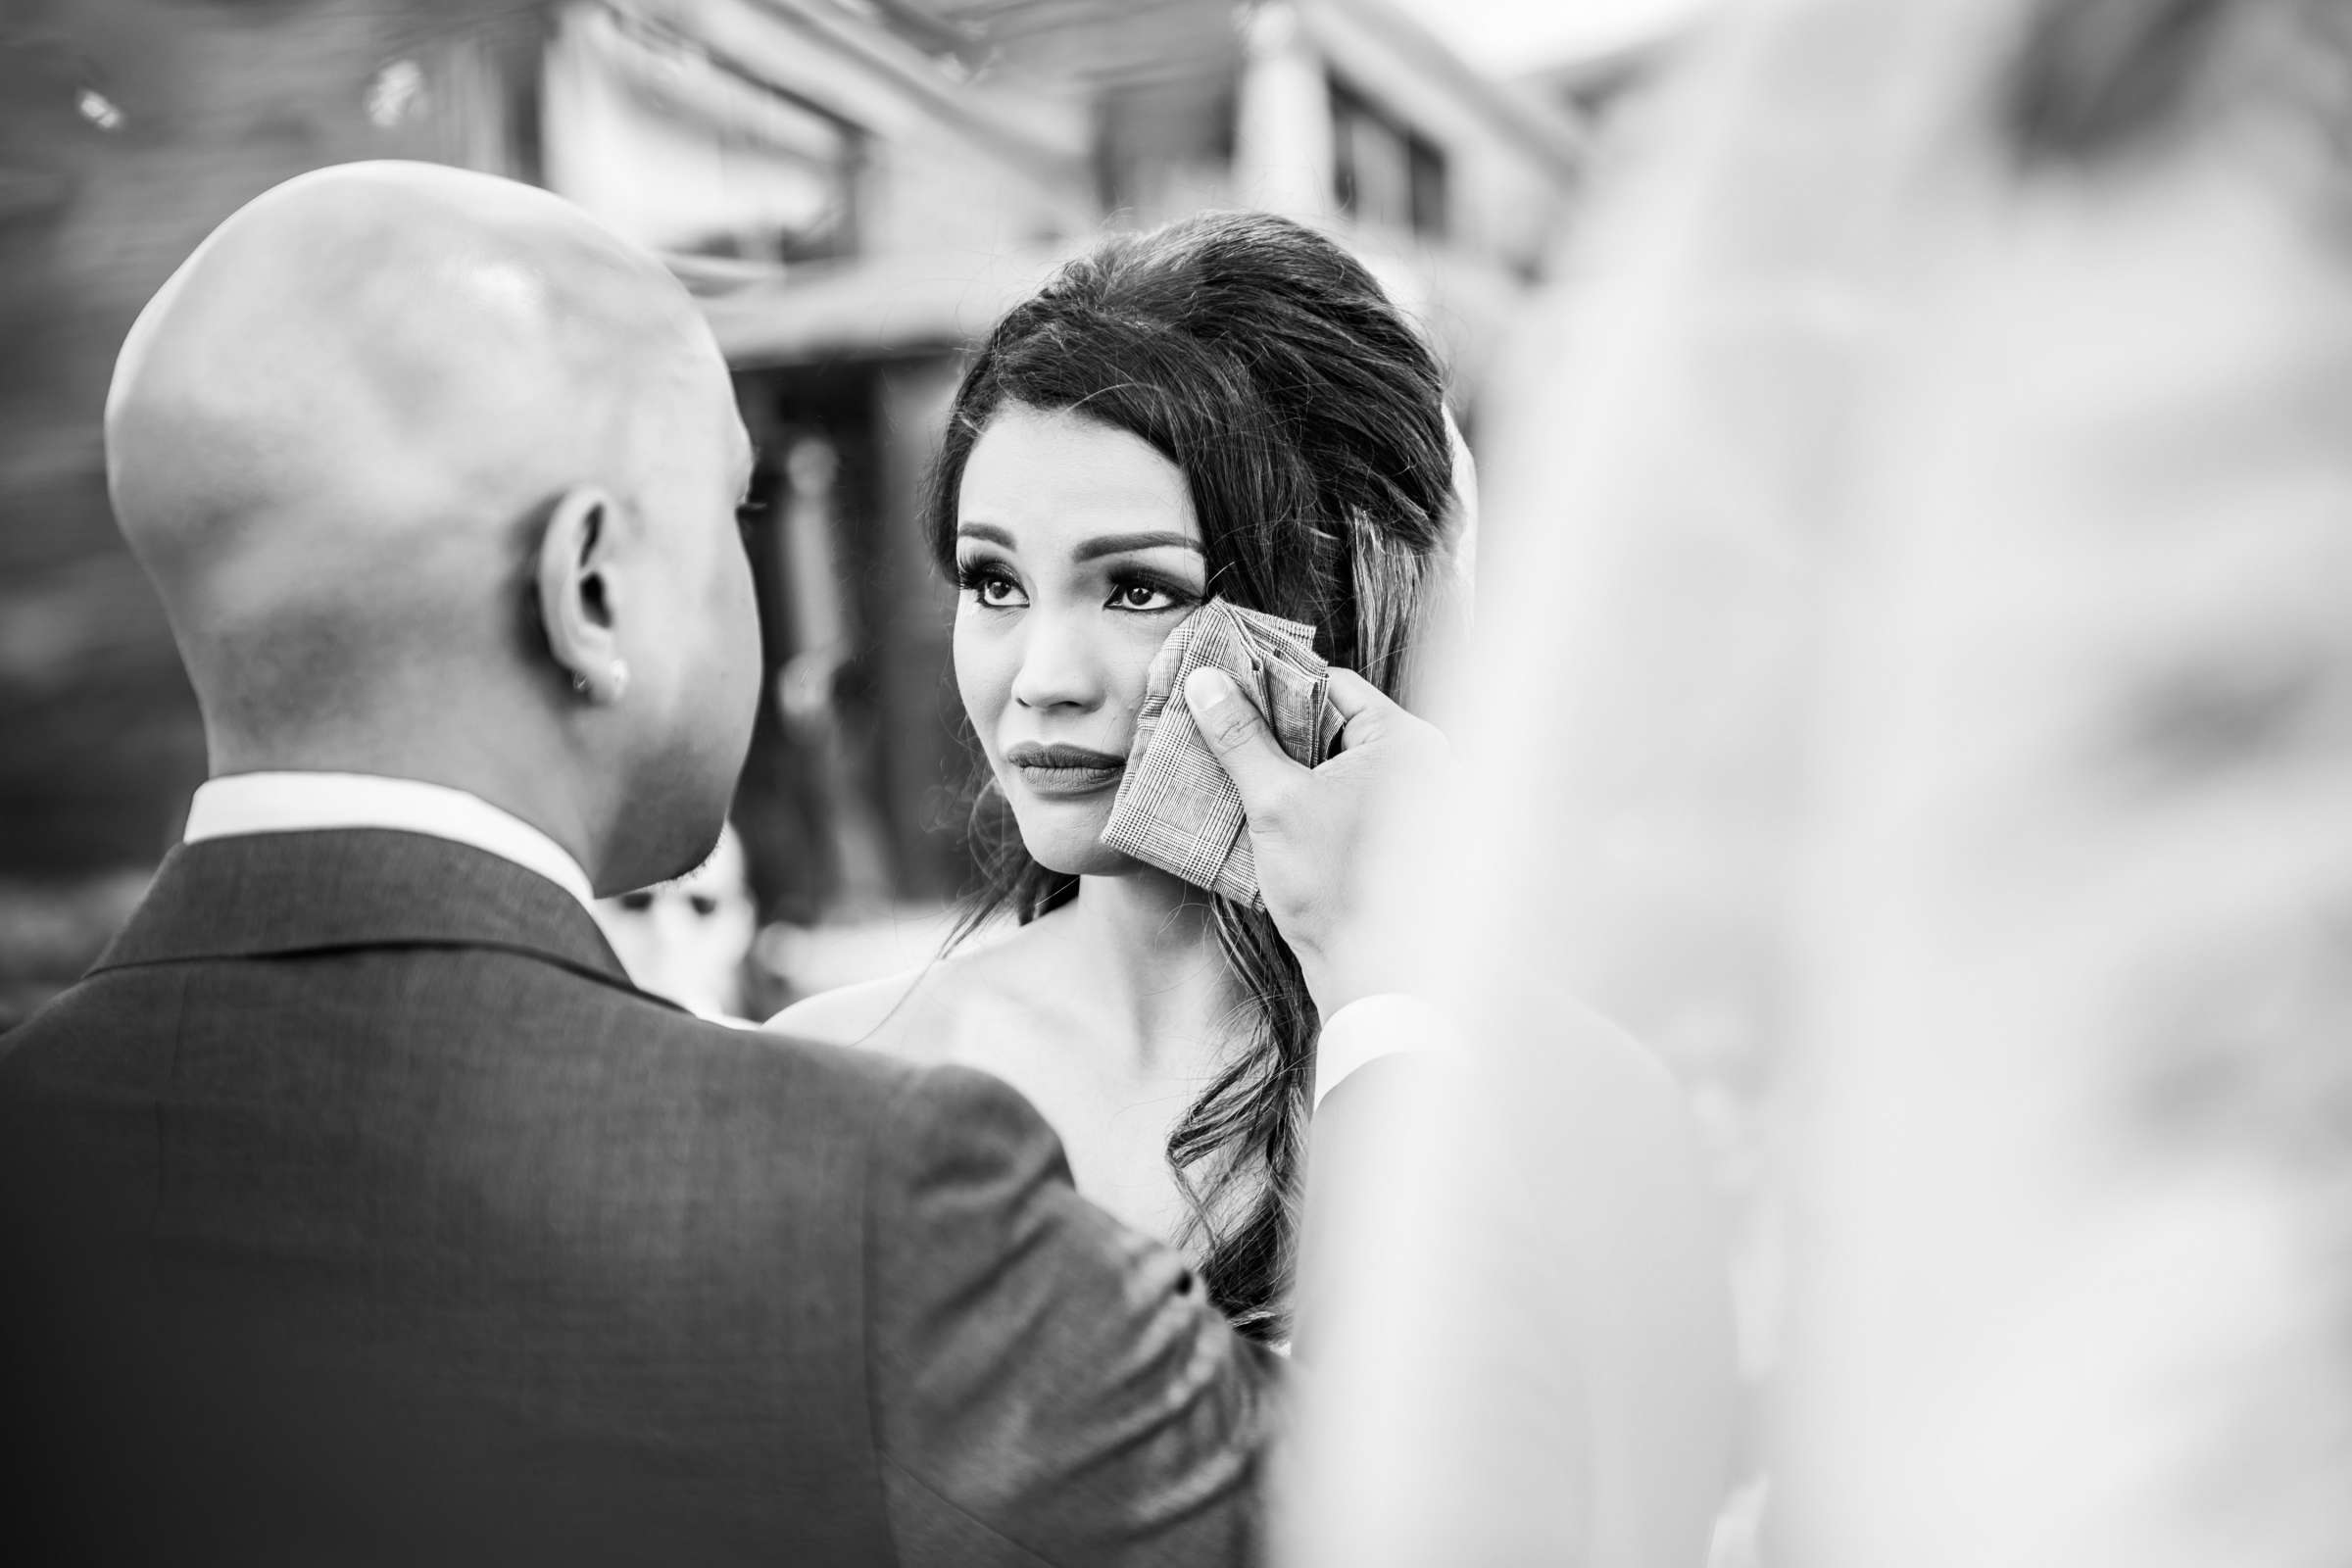 Scripps Seaside Forum Wedding coordinated by Lavish Weddings, Cindy and Justin Wedding Photo #381820 by True Photography